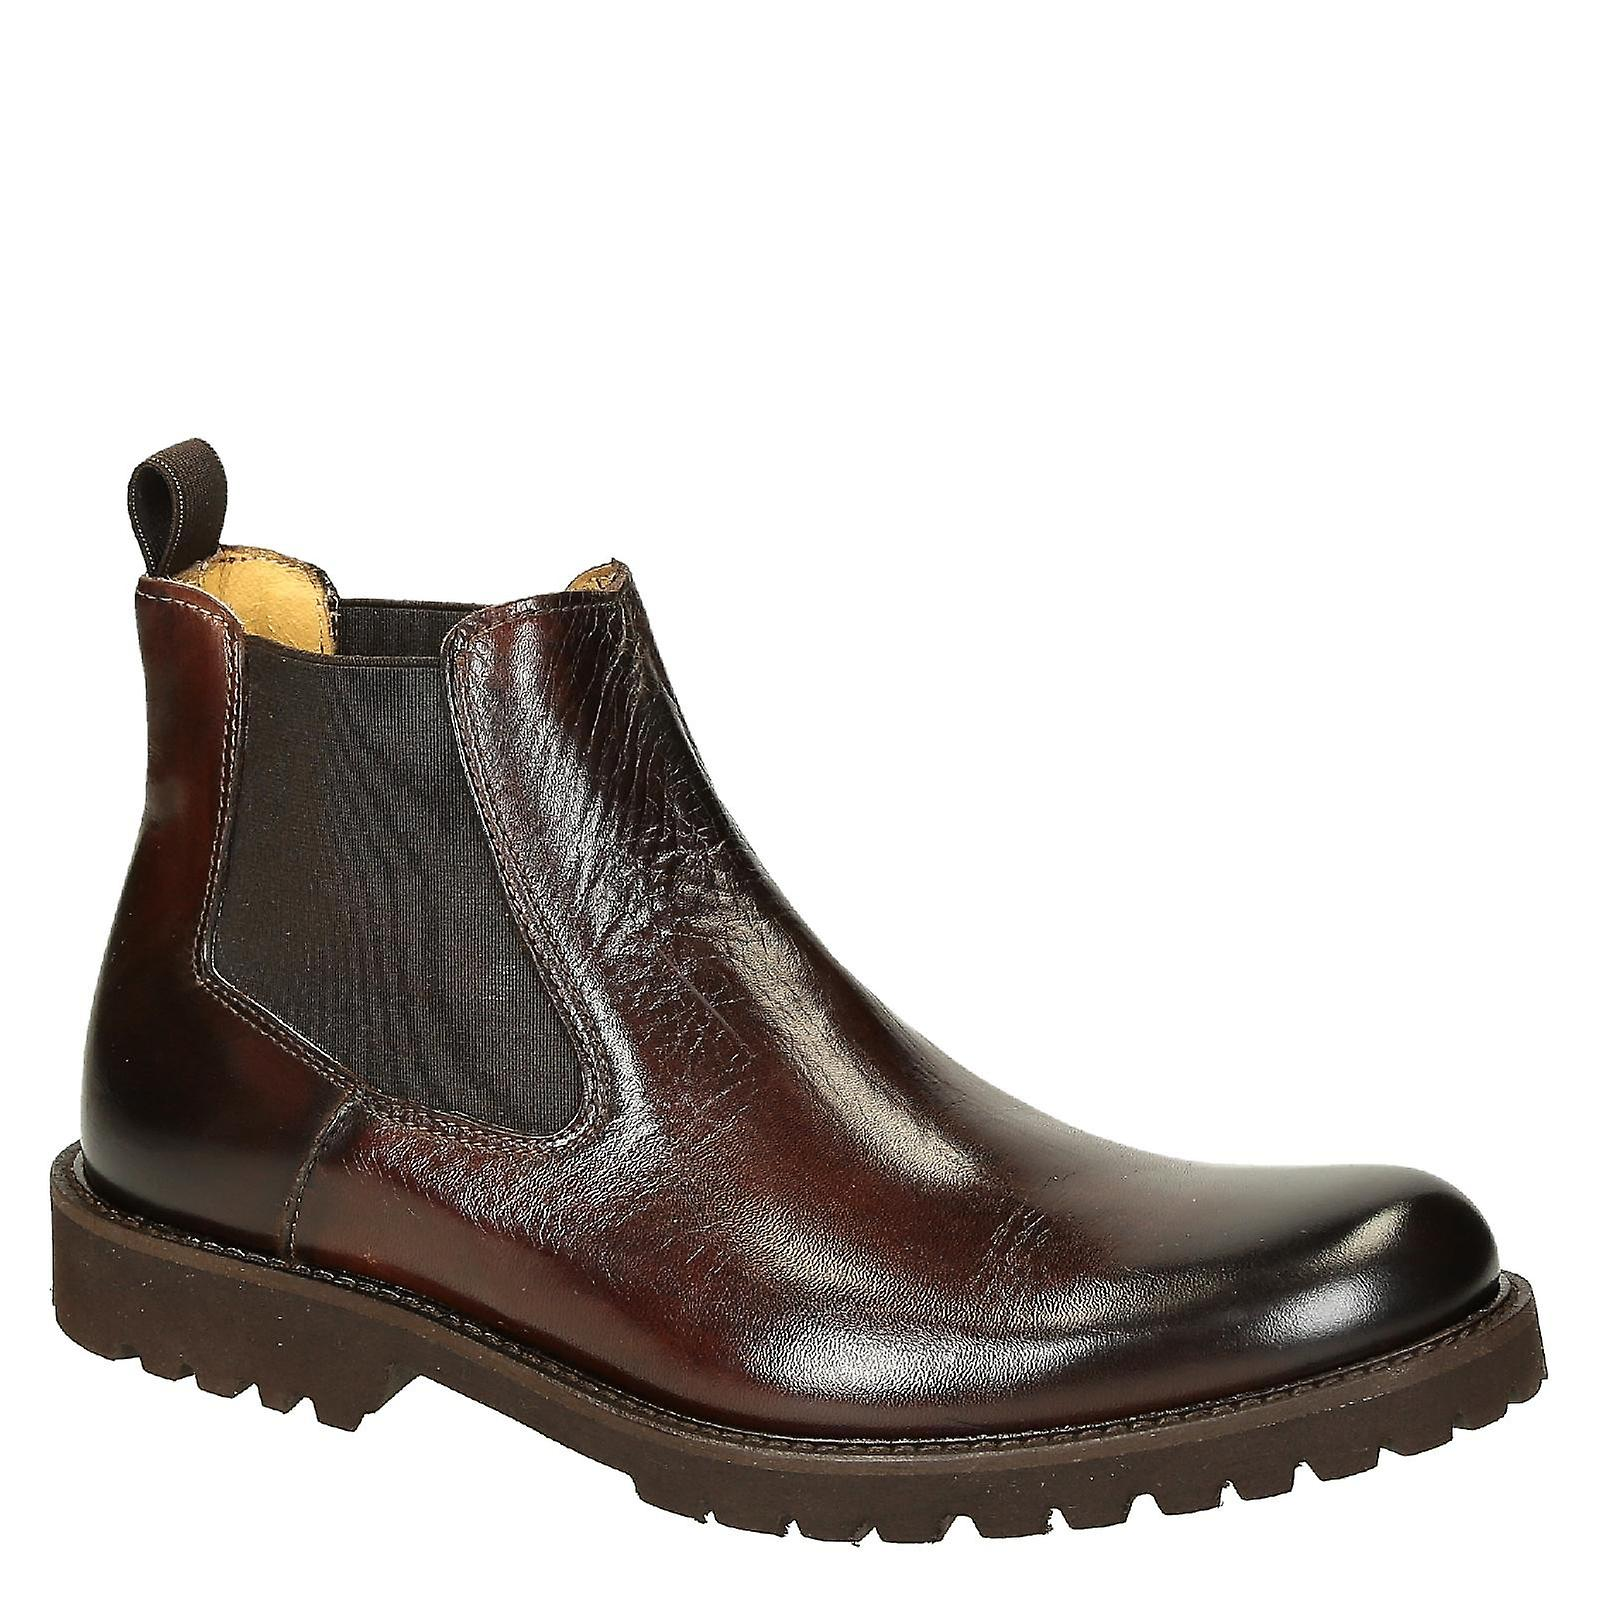 Dark brown calf leather rubber men's chelsea boots with rubber leather sole c01656